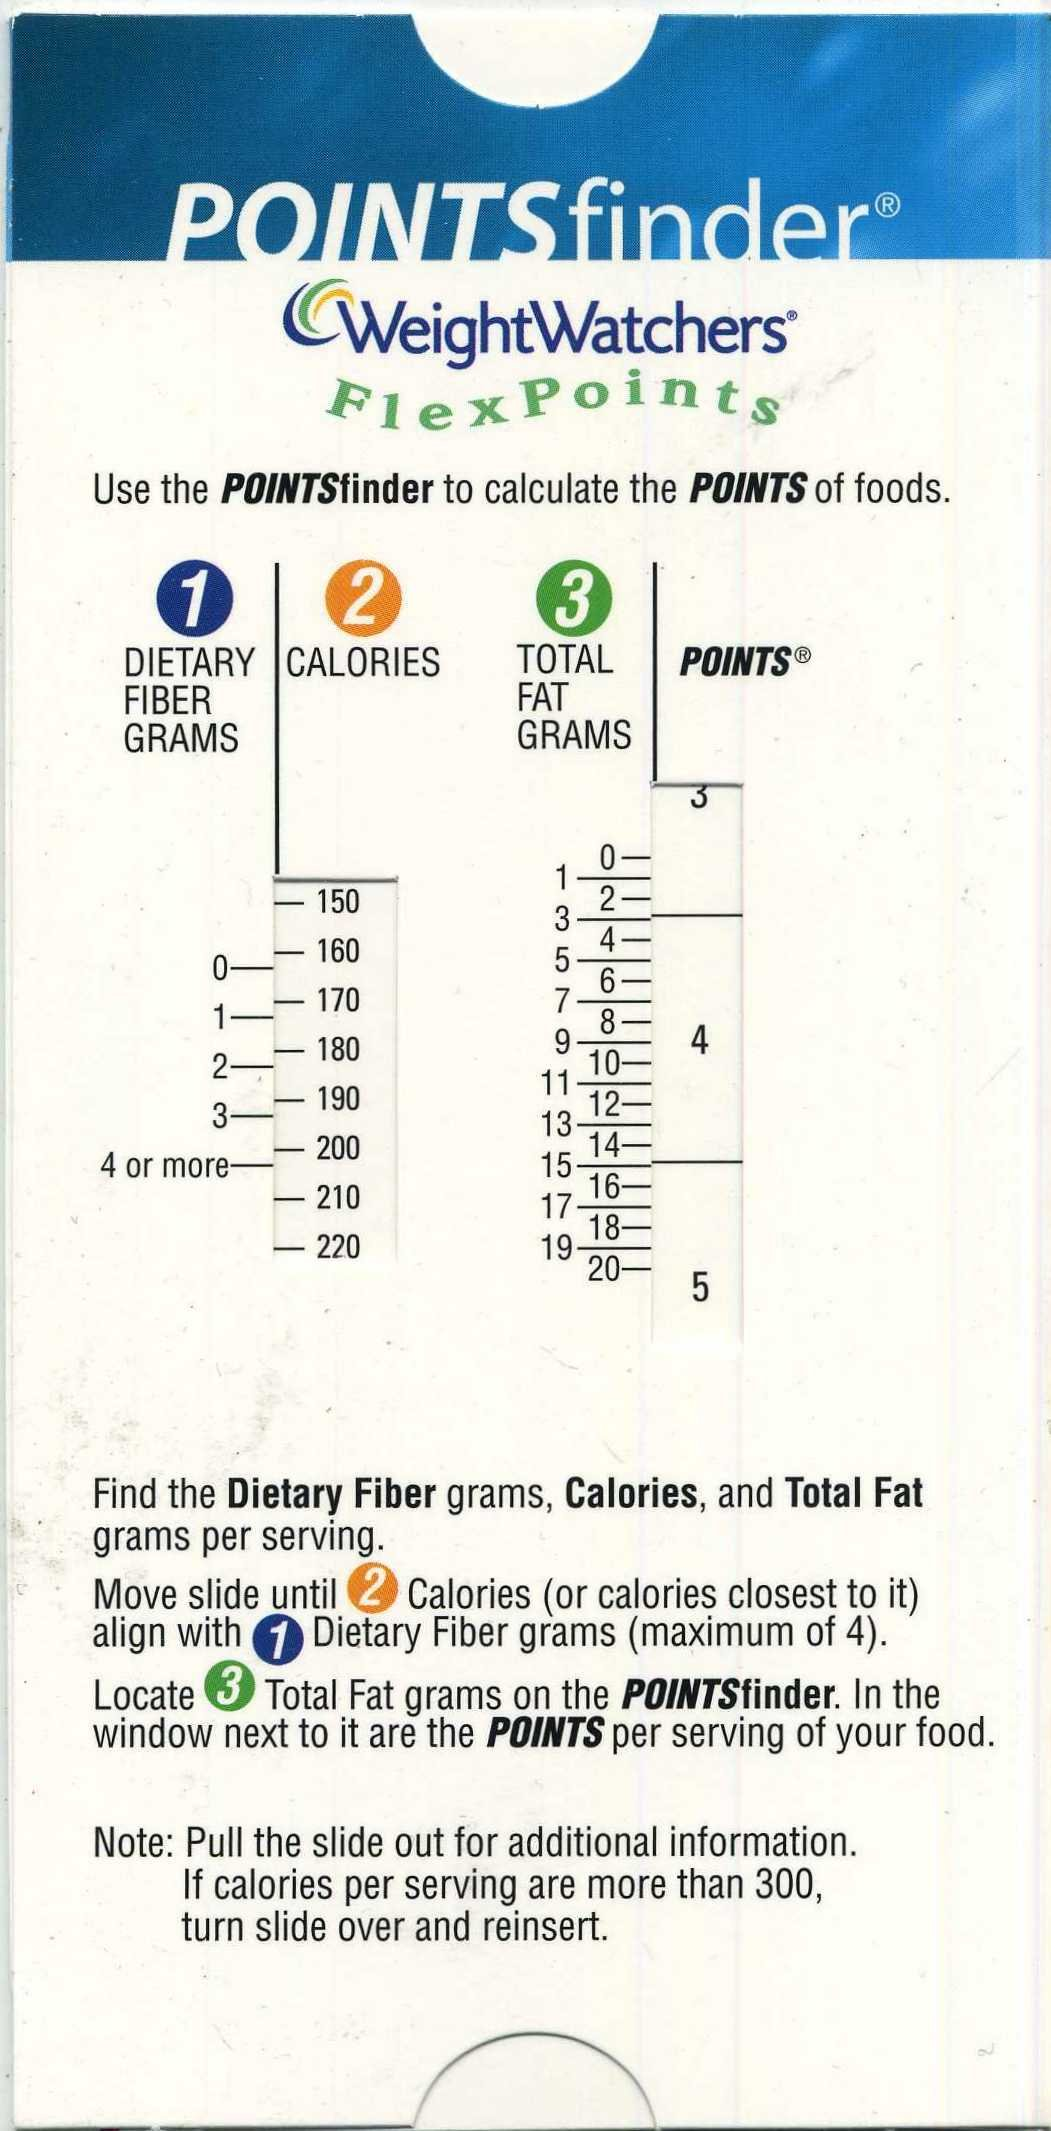 How does weight watchers calculate points